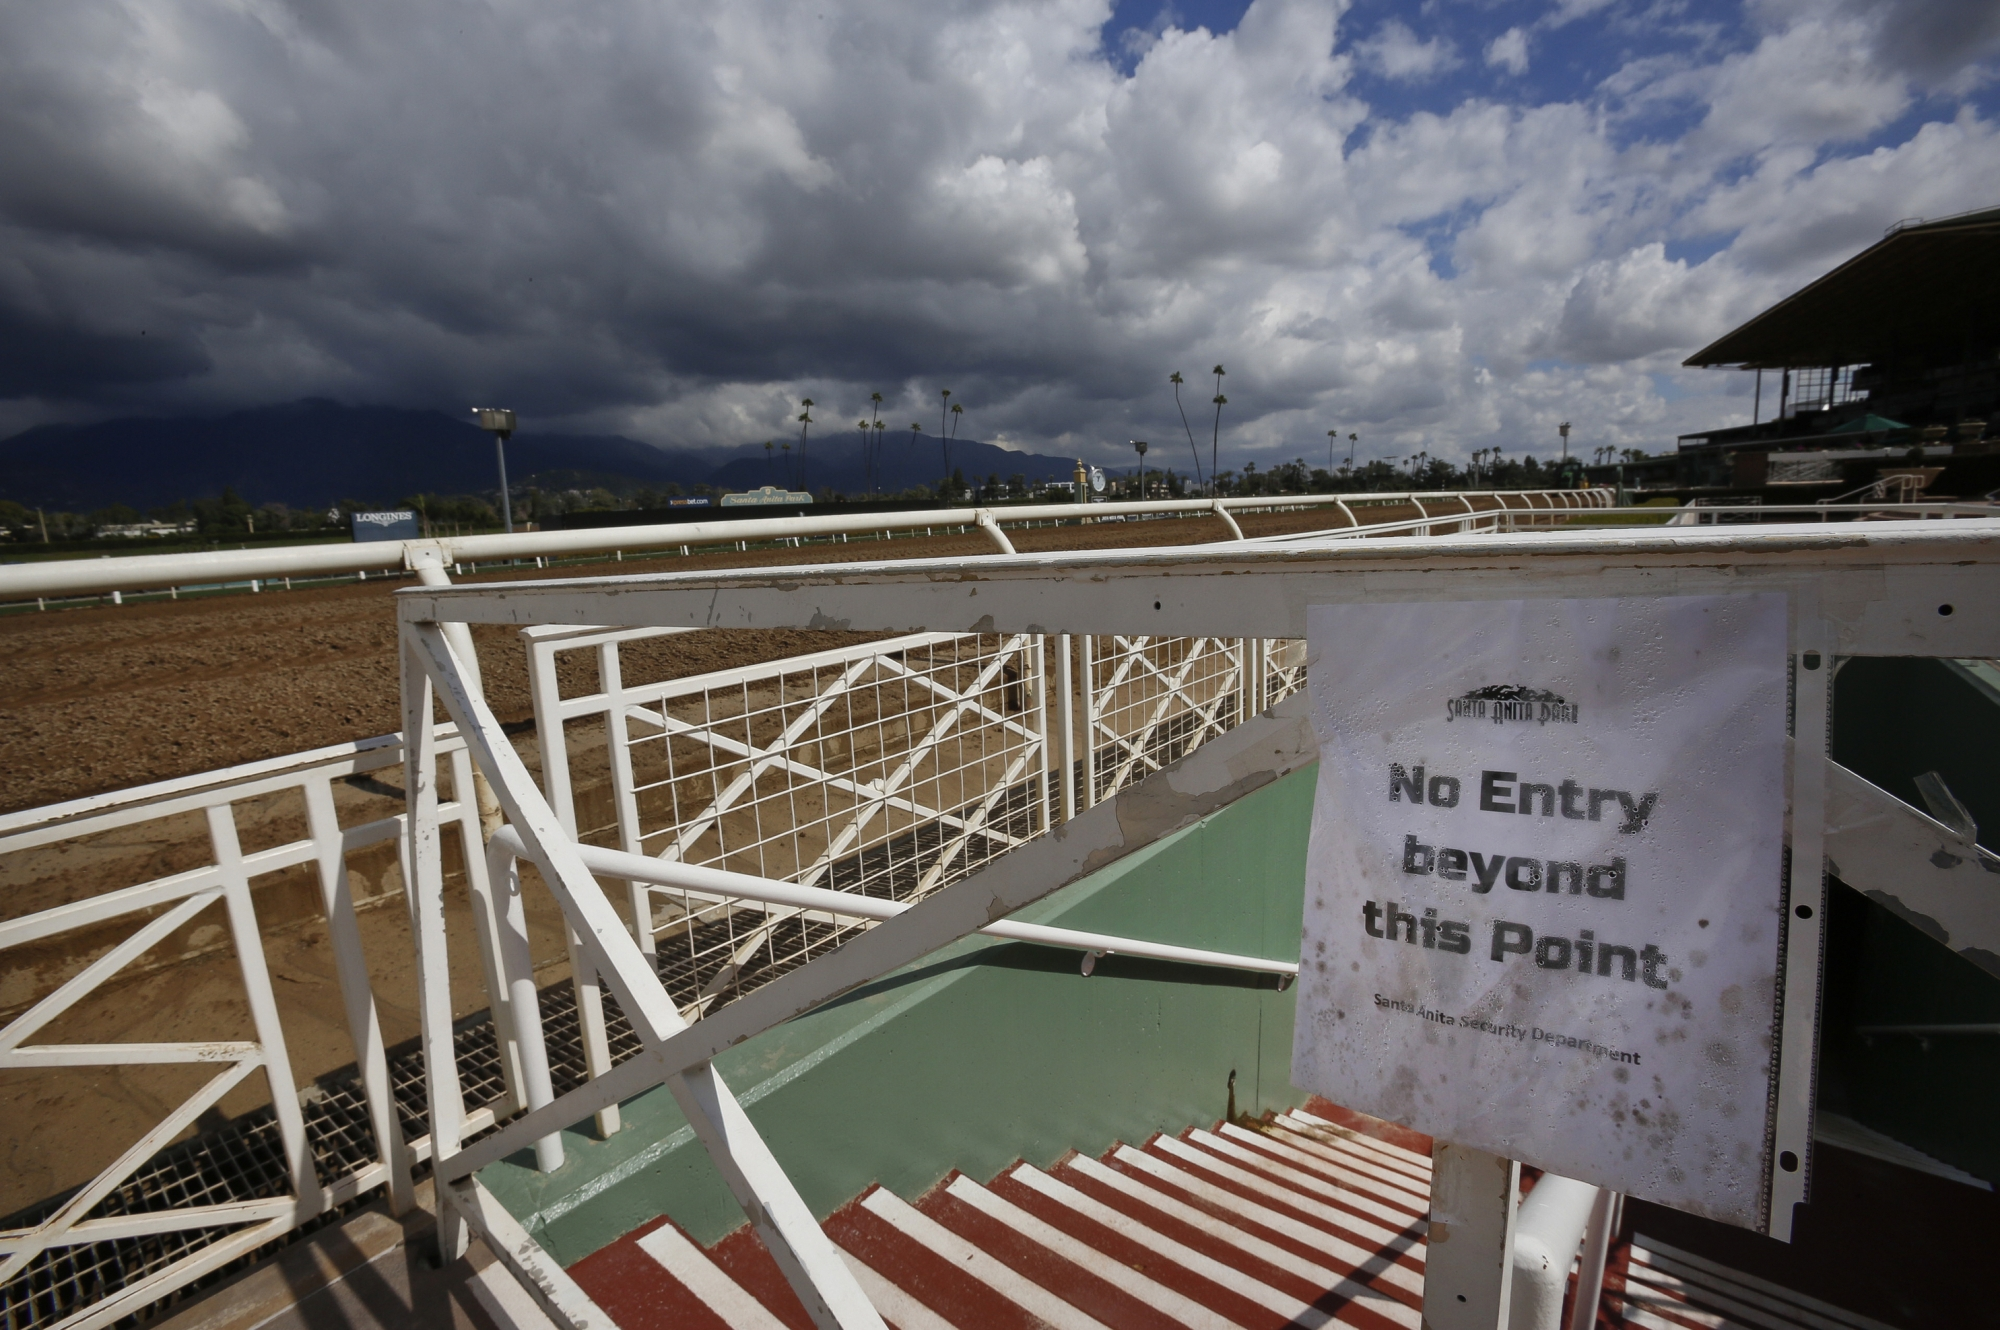 Santa Anita S Dirt Track To Reopen For Limited Training Wtop